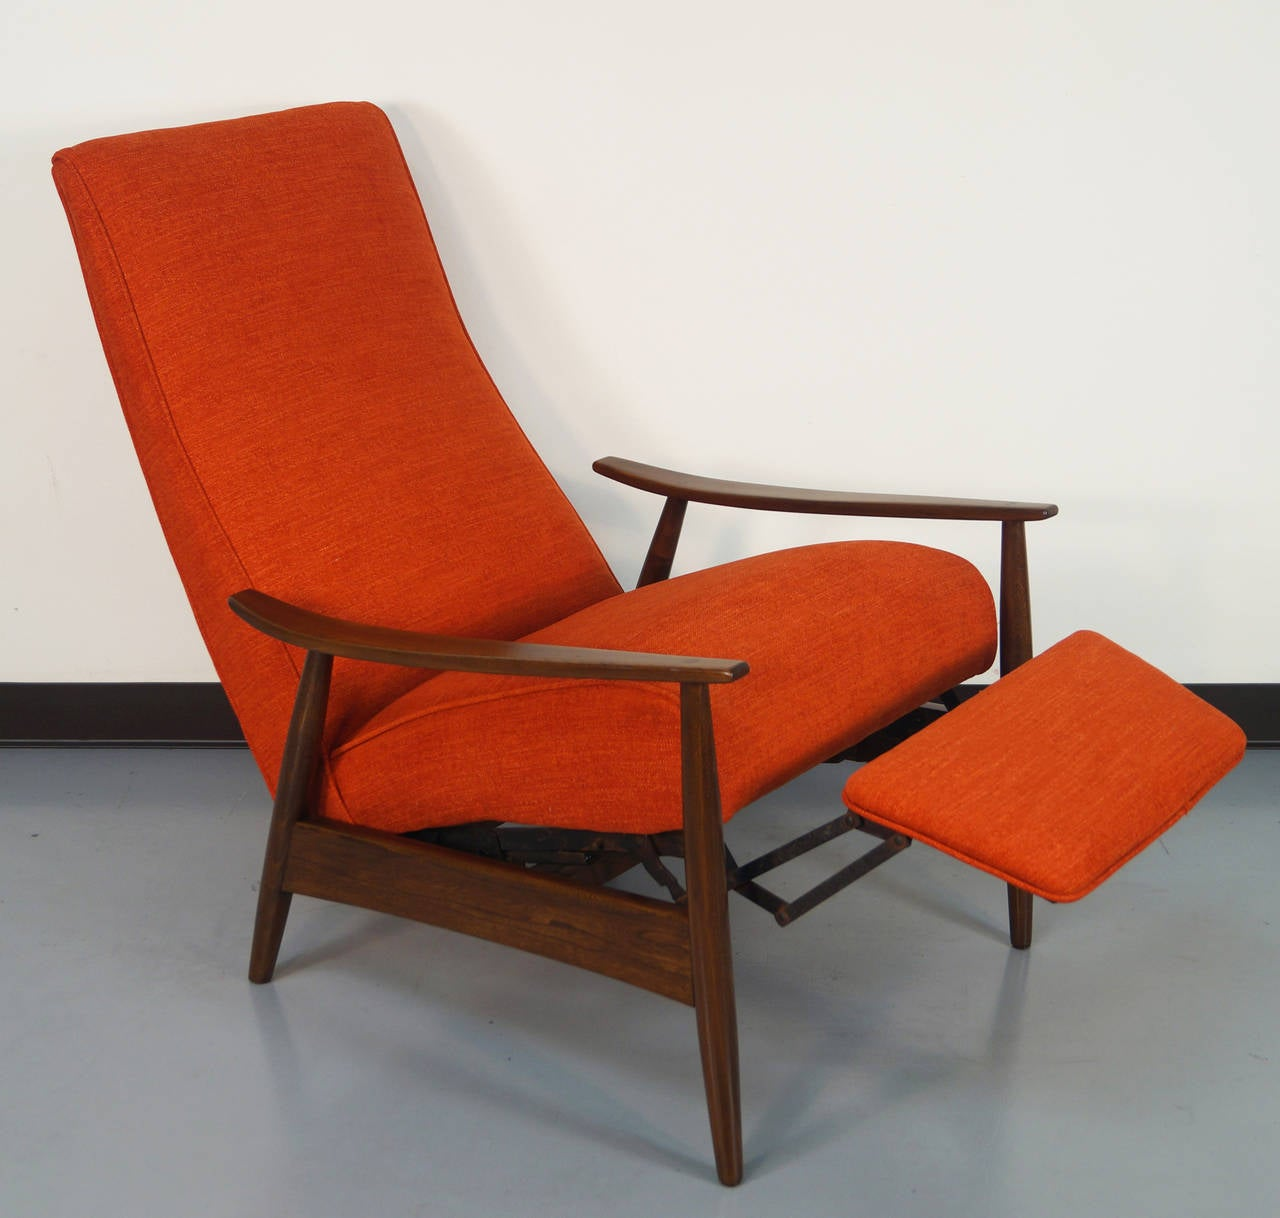 Vintage Reclining Lounge Chair by Milo Baughman 2 & Vintage Reclining Lounge Chair by Milo Baughman at 1stdibs islam-shia.org